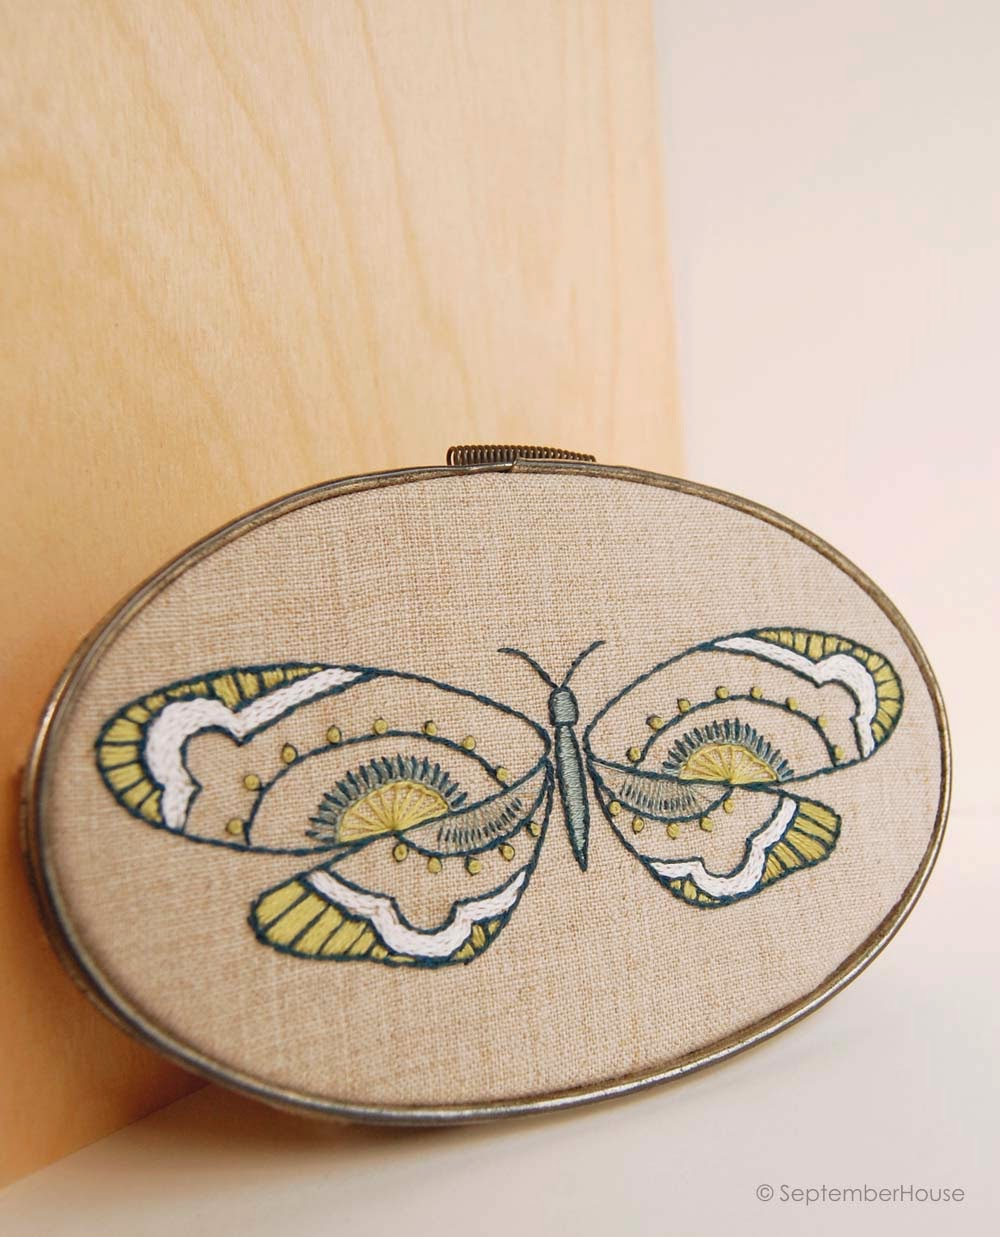 Butterfly hand embroidery patterns from SeptemberHouse